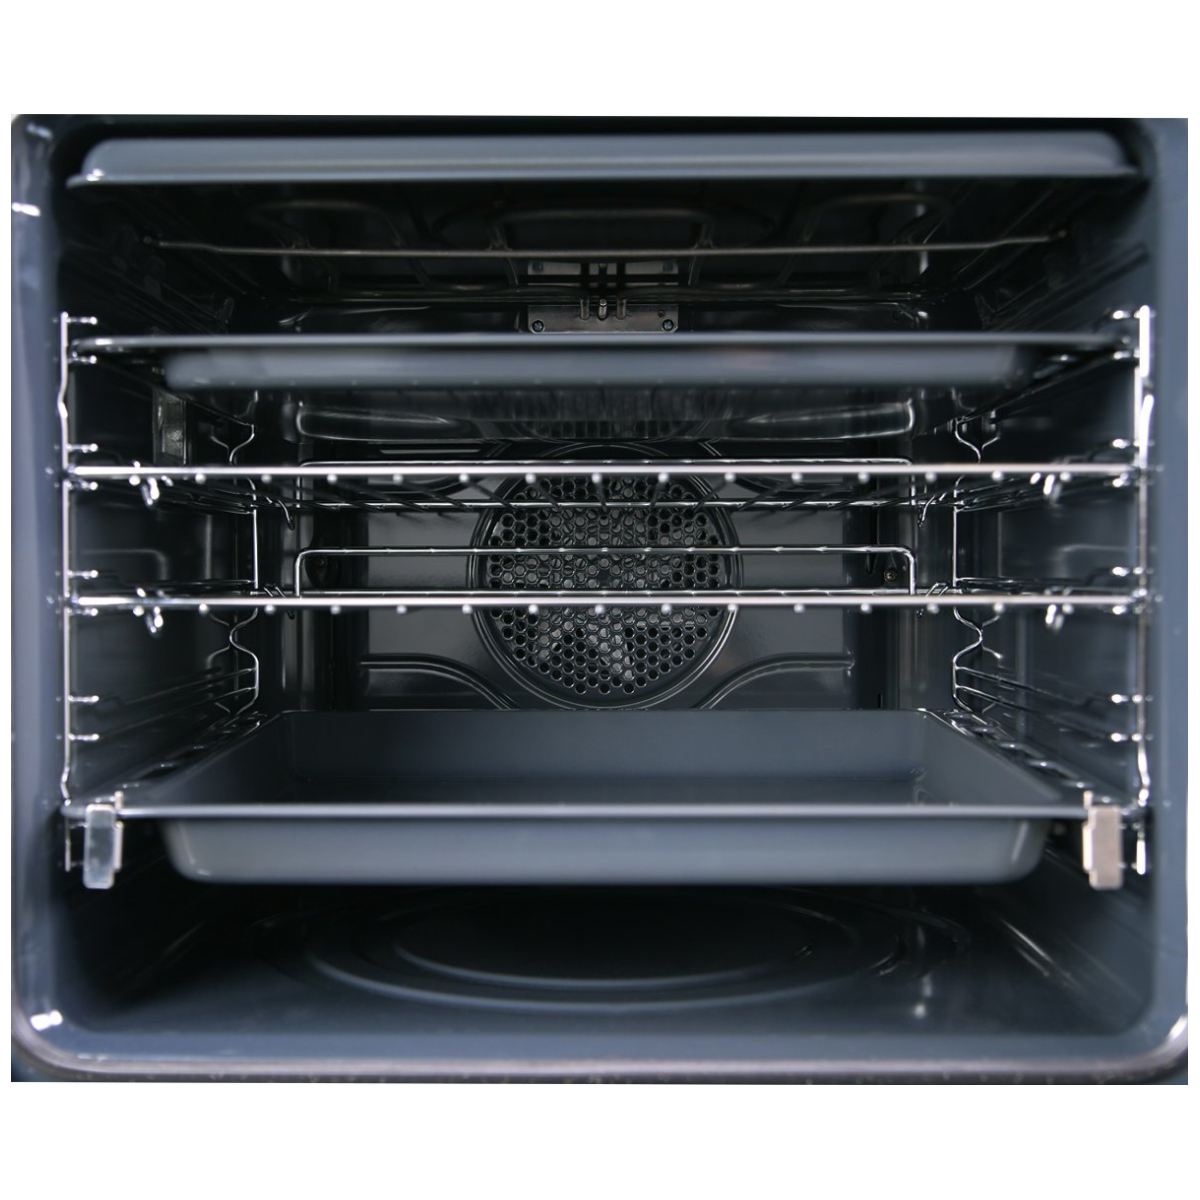 Smeg SFA6309X 60cm Electric Built-In Oven 59318